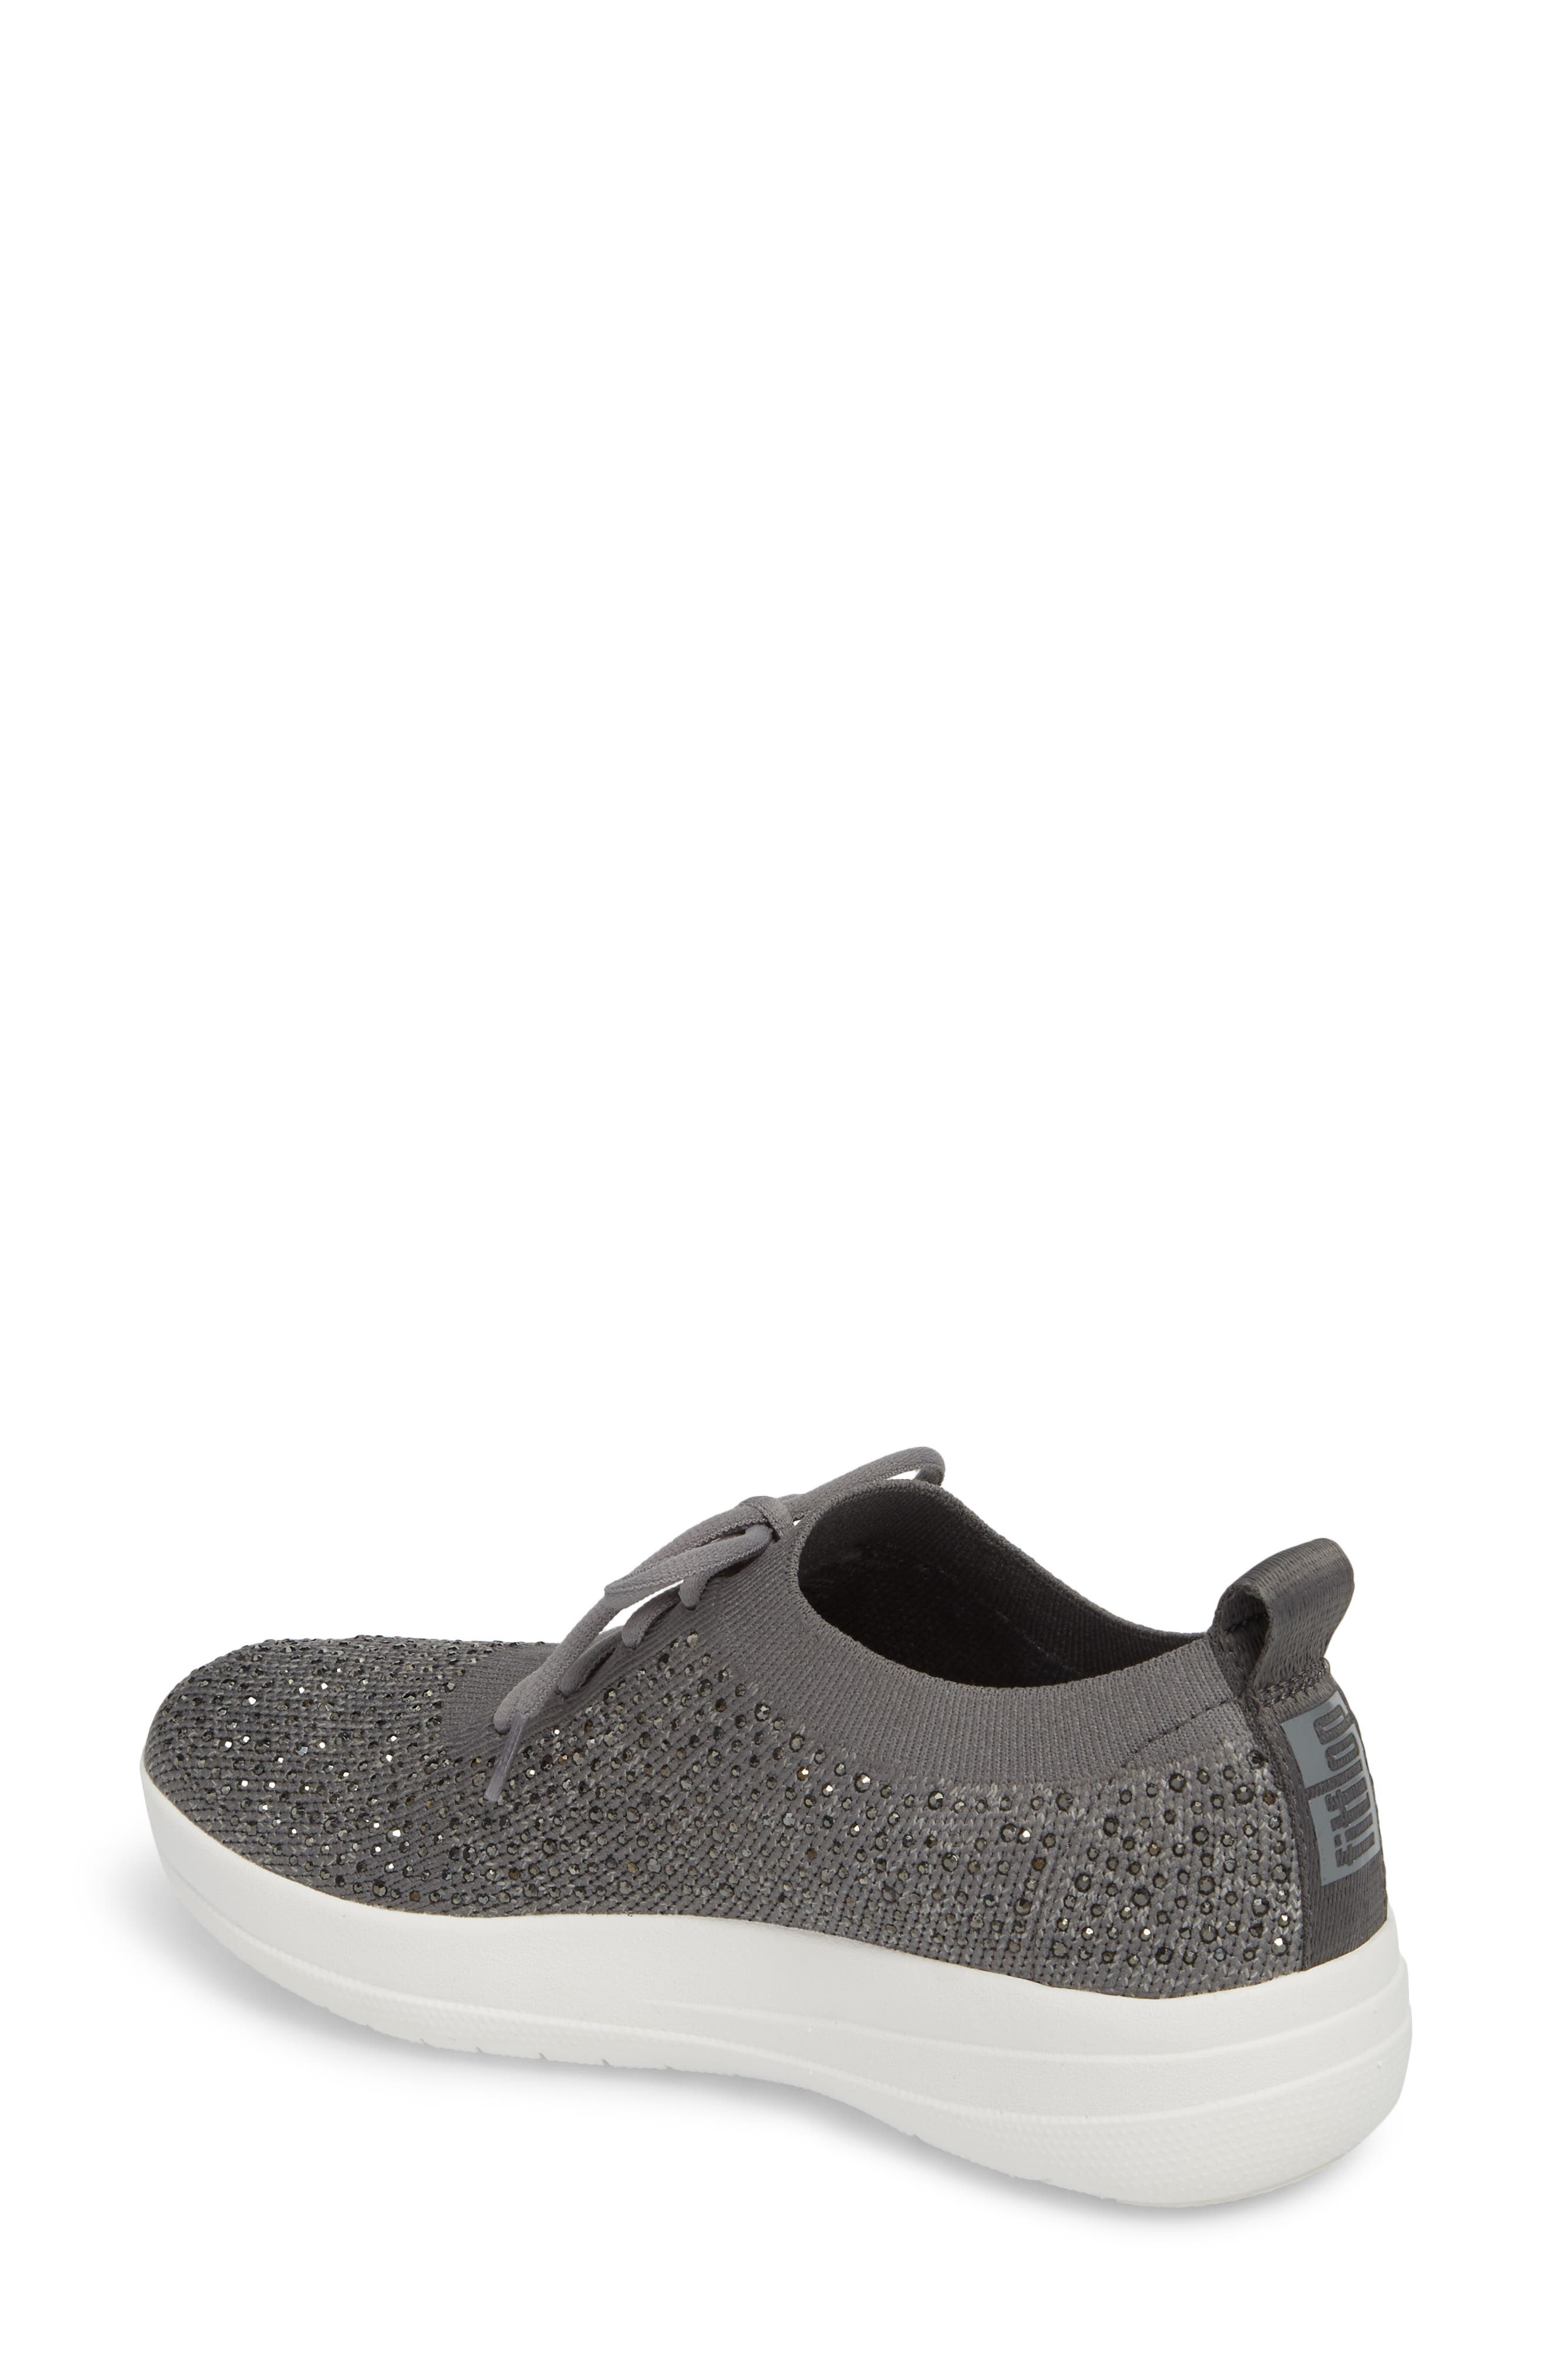 FITFLOP, Uberknit<sup>™</sup> F-Sporty Sneaker, Alternate thumbnail 2, color, CHARCOAL/ DUSTY GREY